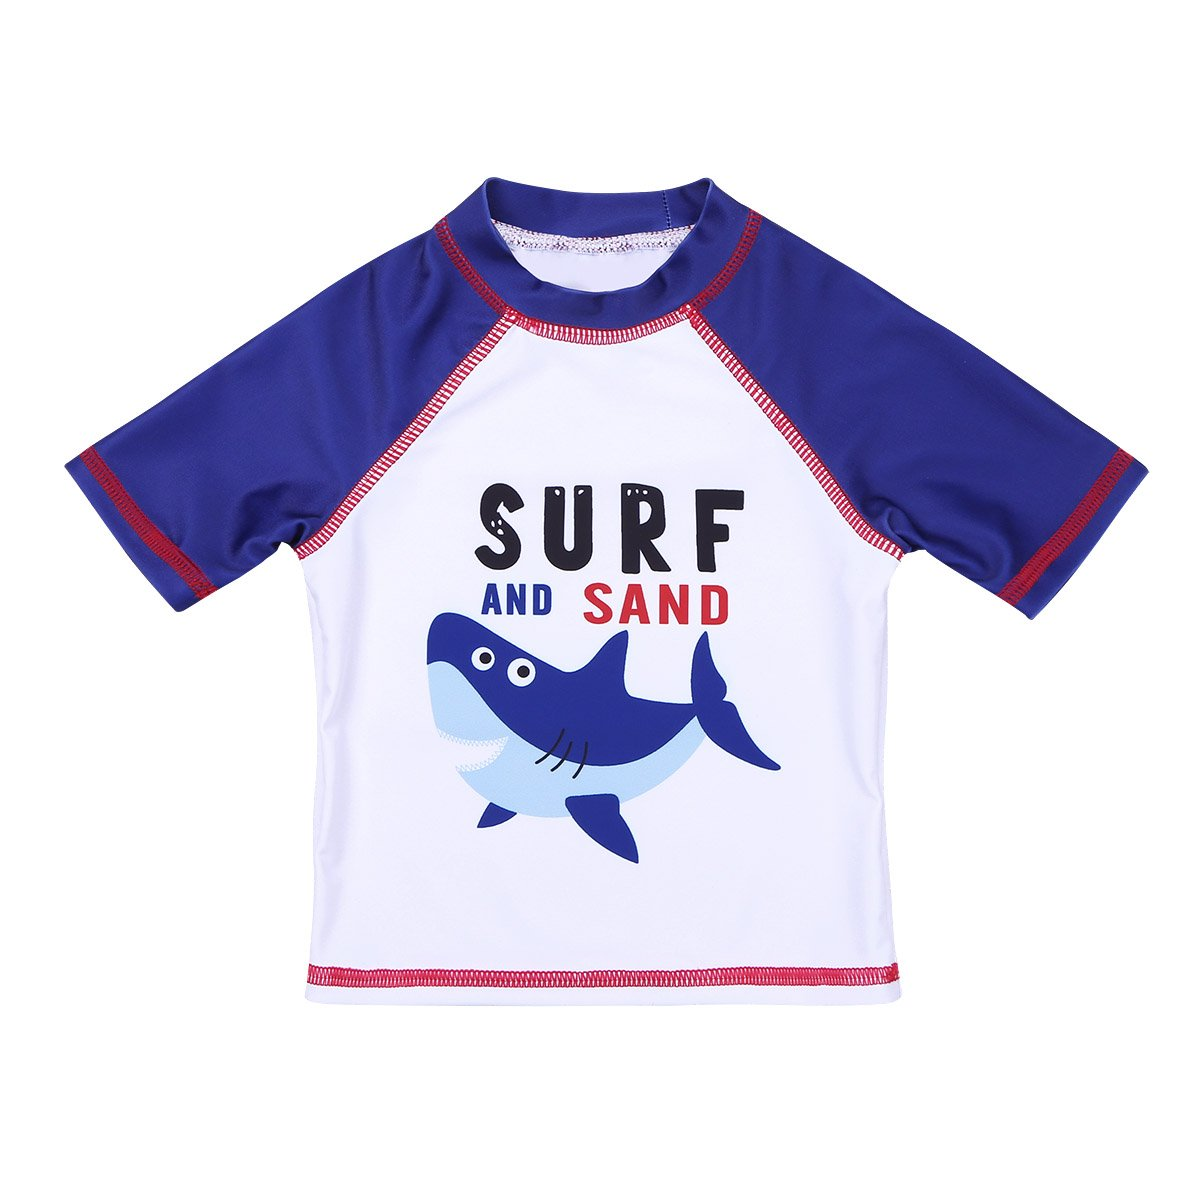 e6ebd0c5e4d6b iiniim Children Boys Tankini Shark Pattern Long/Short Sleeves Swimsuit  Swimwear Bathing Suit Set Tops with Bottoms Swimming Cap: Amazon.co.uk:  Clothing